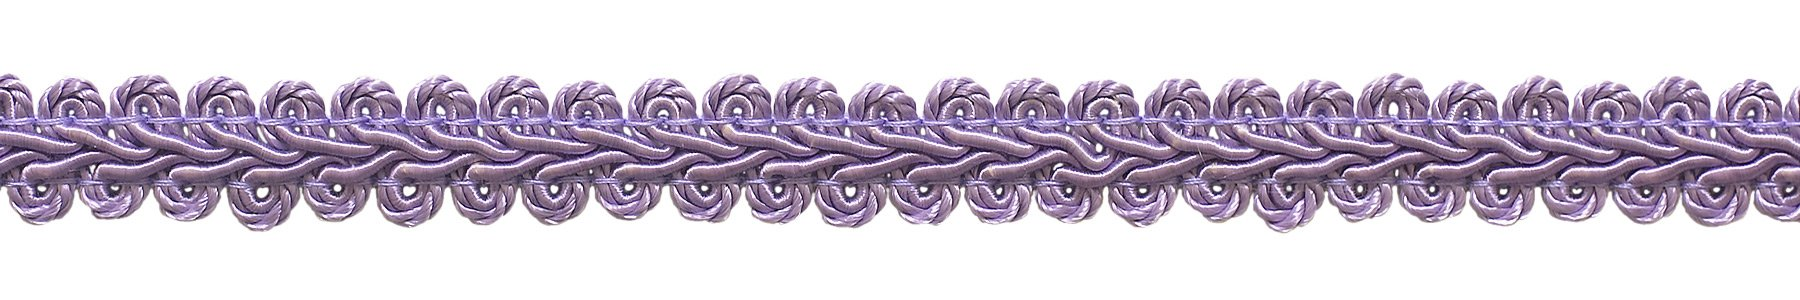 DÉCOPRO 54 Yard Value Pack of 1/2 inch Basic Trim French Gimp Braid, Style# FGS Color: Lilac - D7 (164 Ft / 50 Meters) by DÉCOPRO